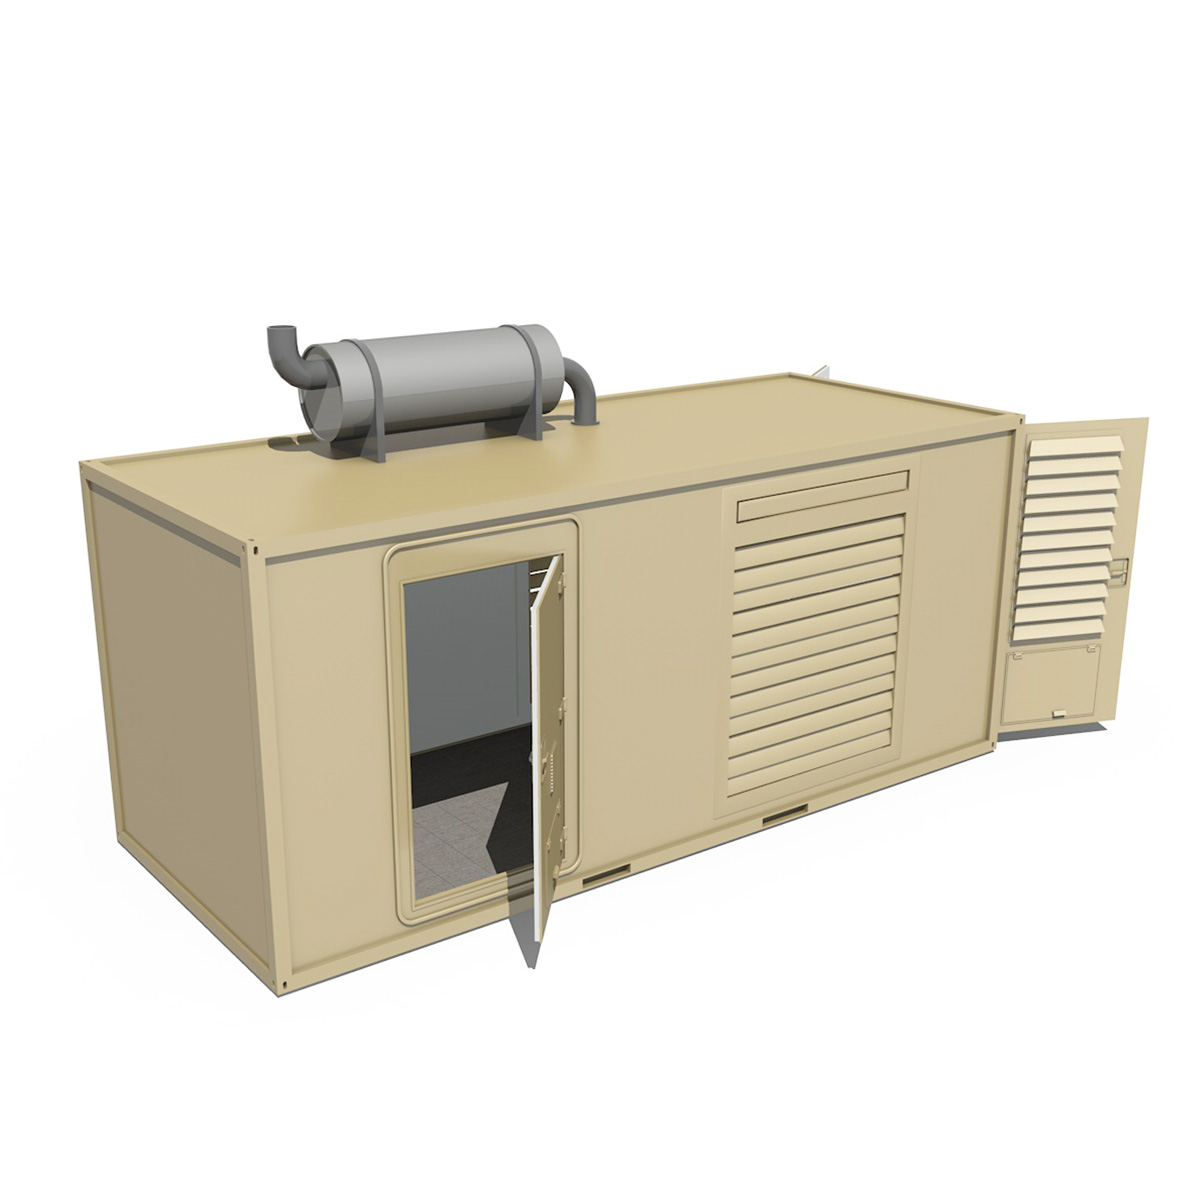 20ft generator container version 1 3d model 3ds c4d fbx lwo lw lws obj 264723